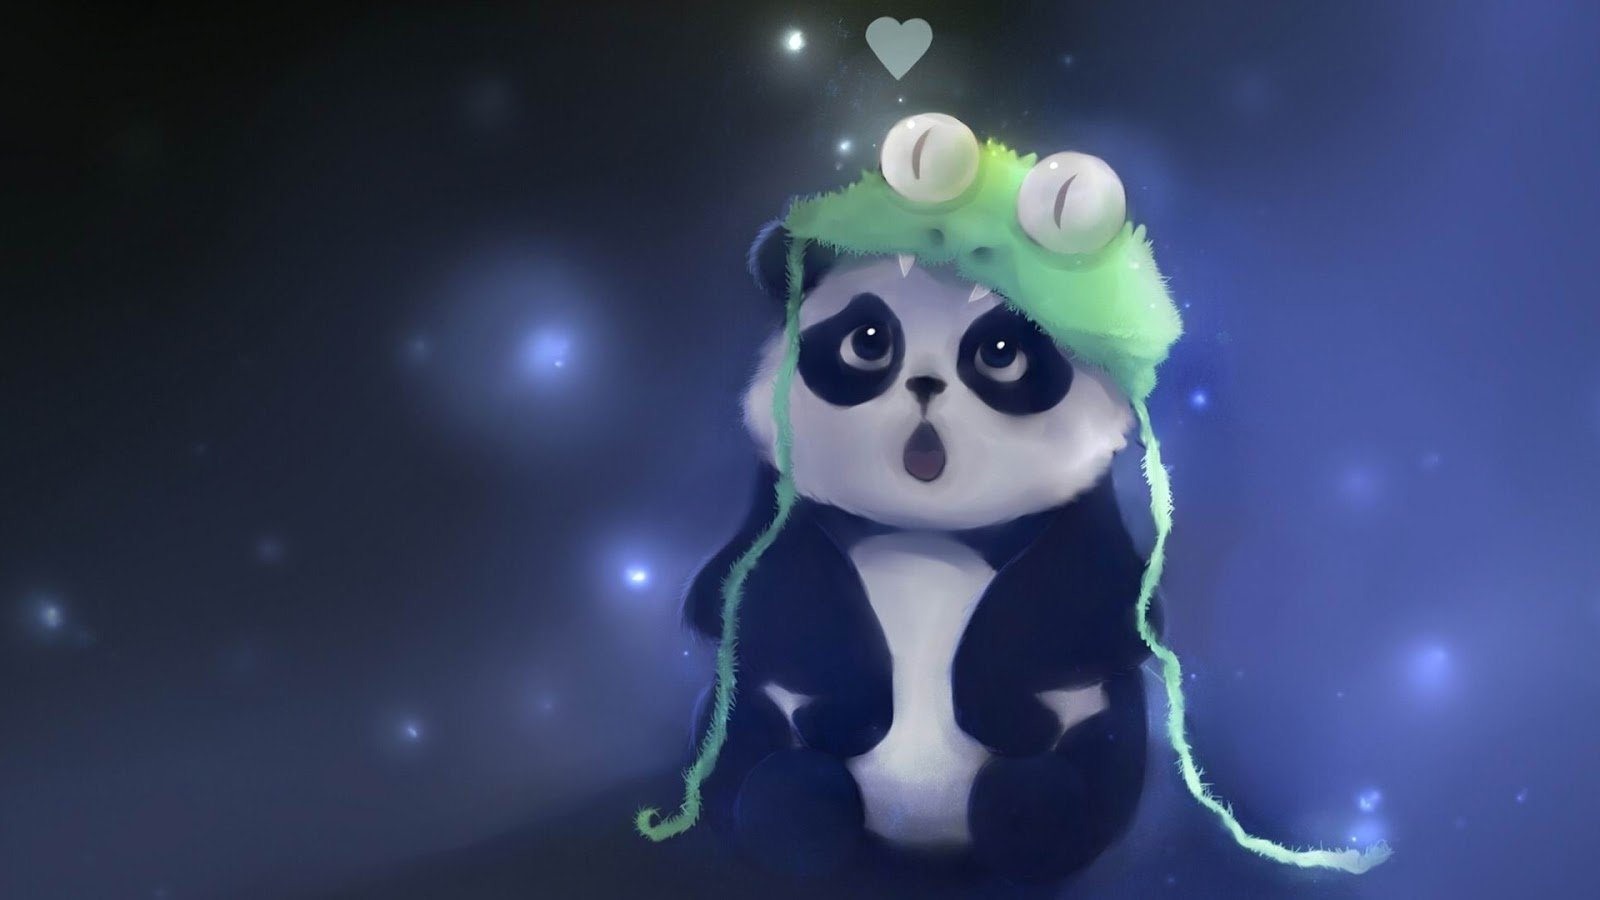 Wallpaper Of Panda